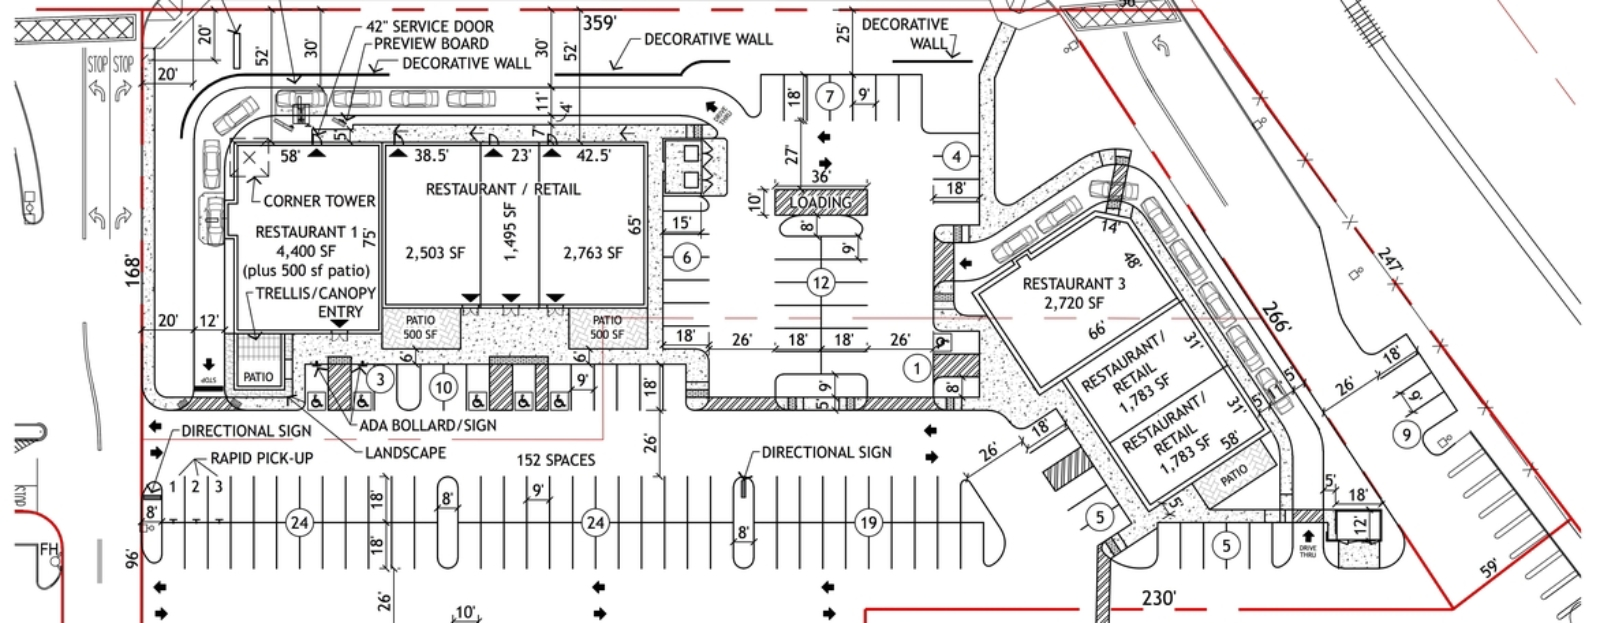 Nice sample house plans 3 parking lot site plan 1600x623 for Home site plan